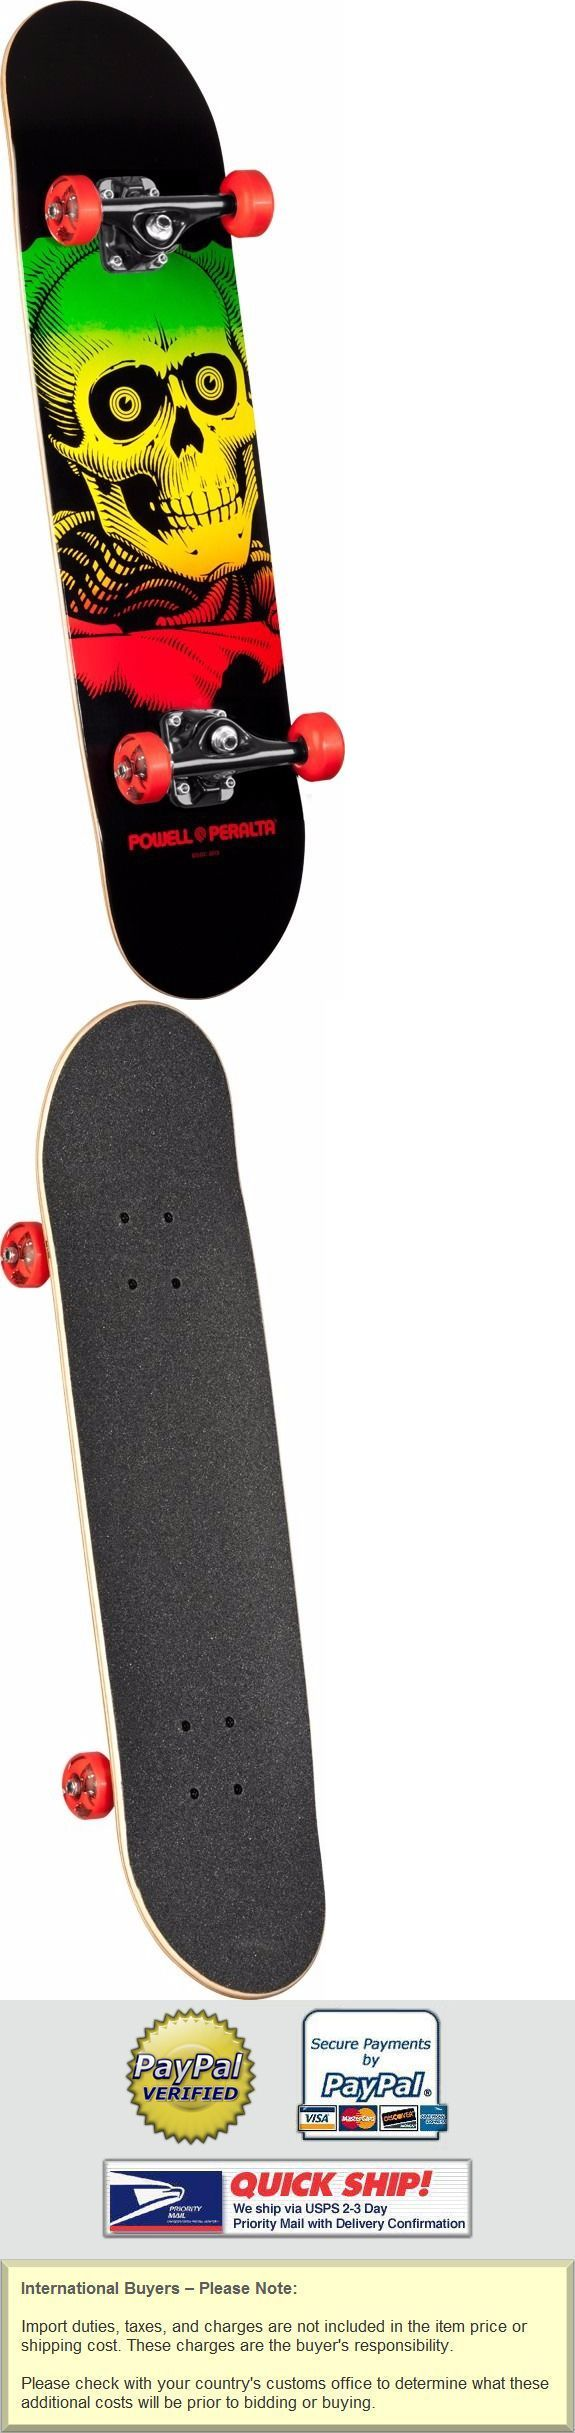 Skateboards-Complete 16264: Powell Peralta Ripper 7.75 Popsicle Complete Skateboard Rasta Red BUY IT NOW ONLY: $64.95